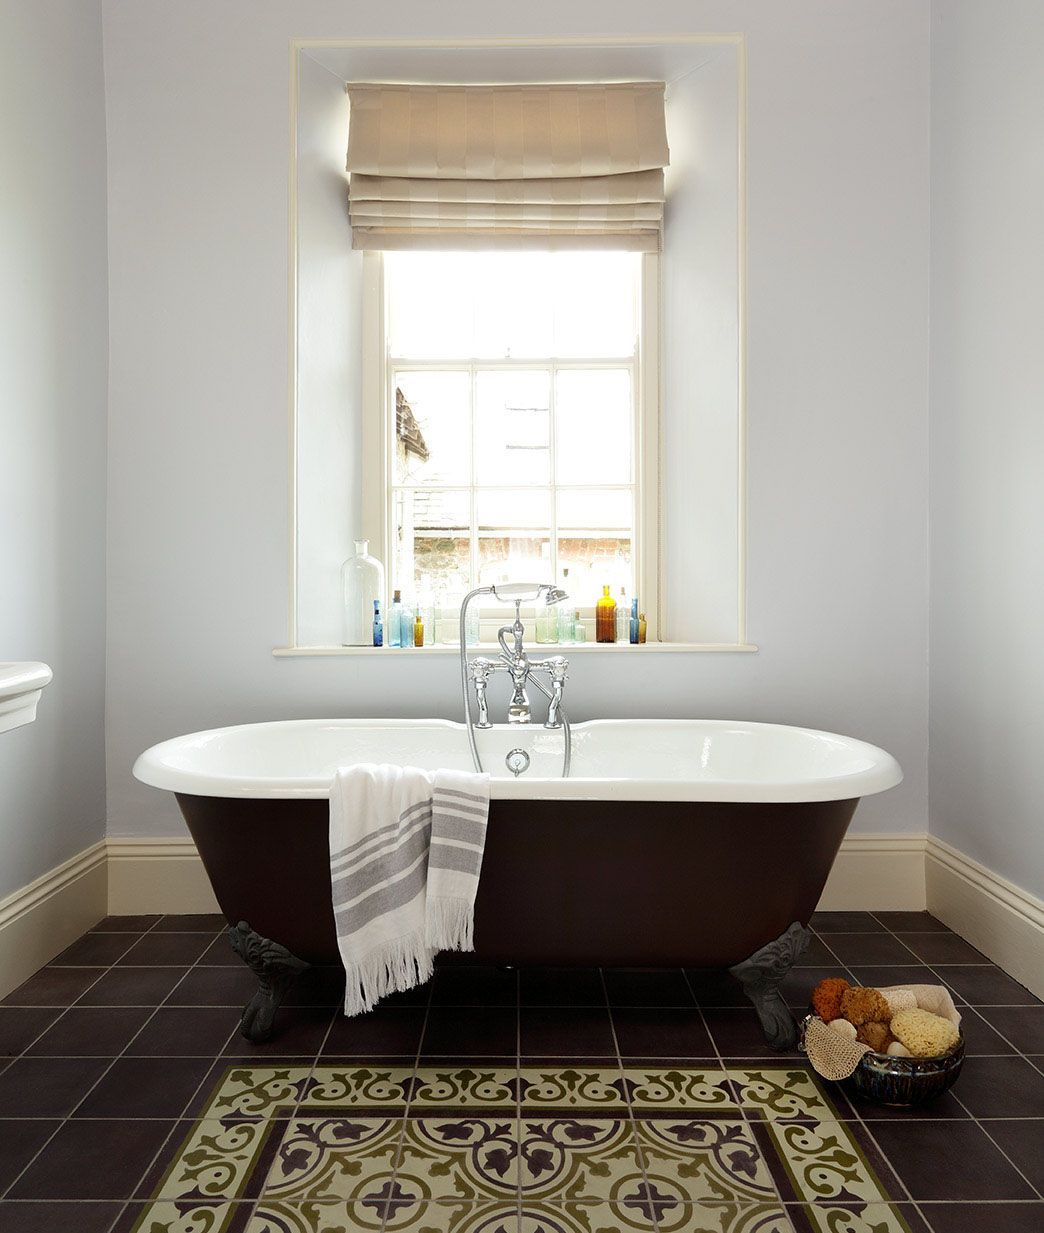 Laying tiles to create the appearance of a boldly patterned rug ...